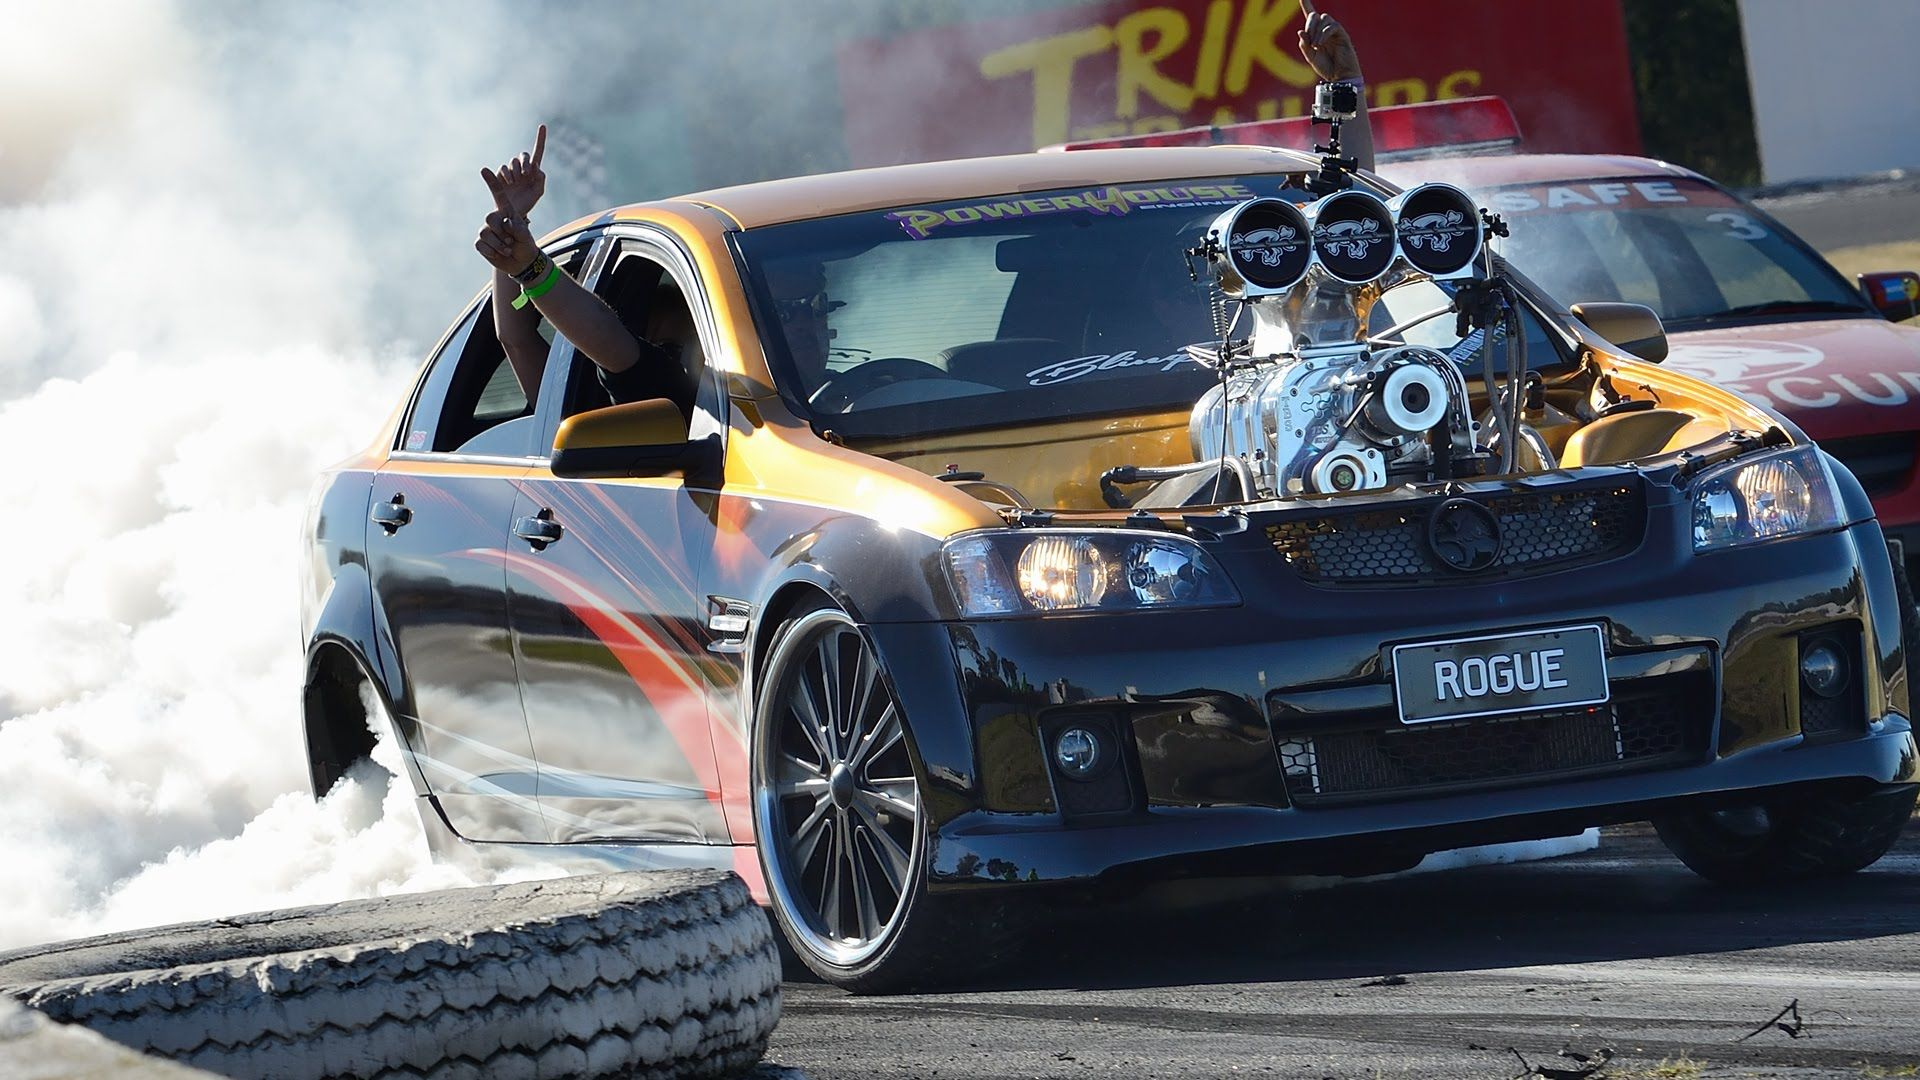 Blown V8 Holden Commodore Burnout FIRE – ROGUE | Drags